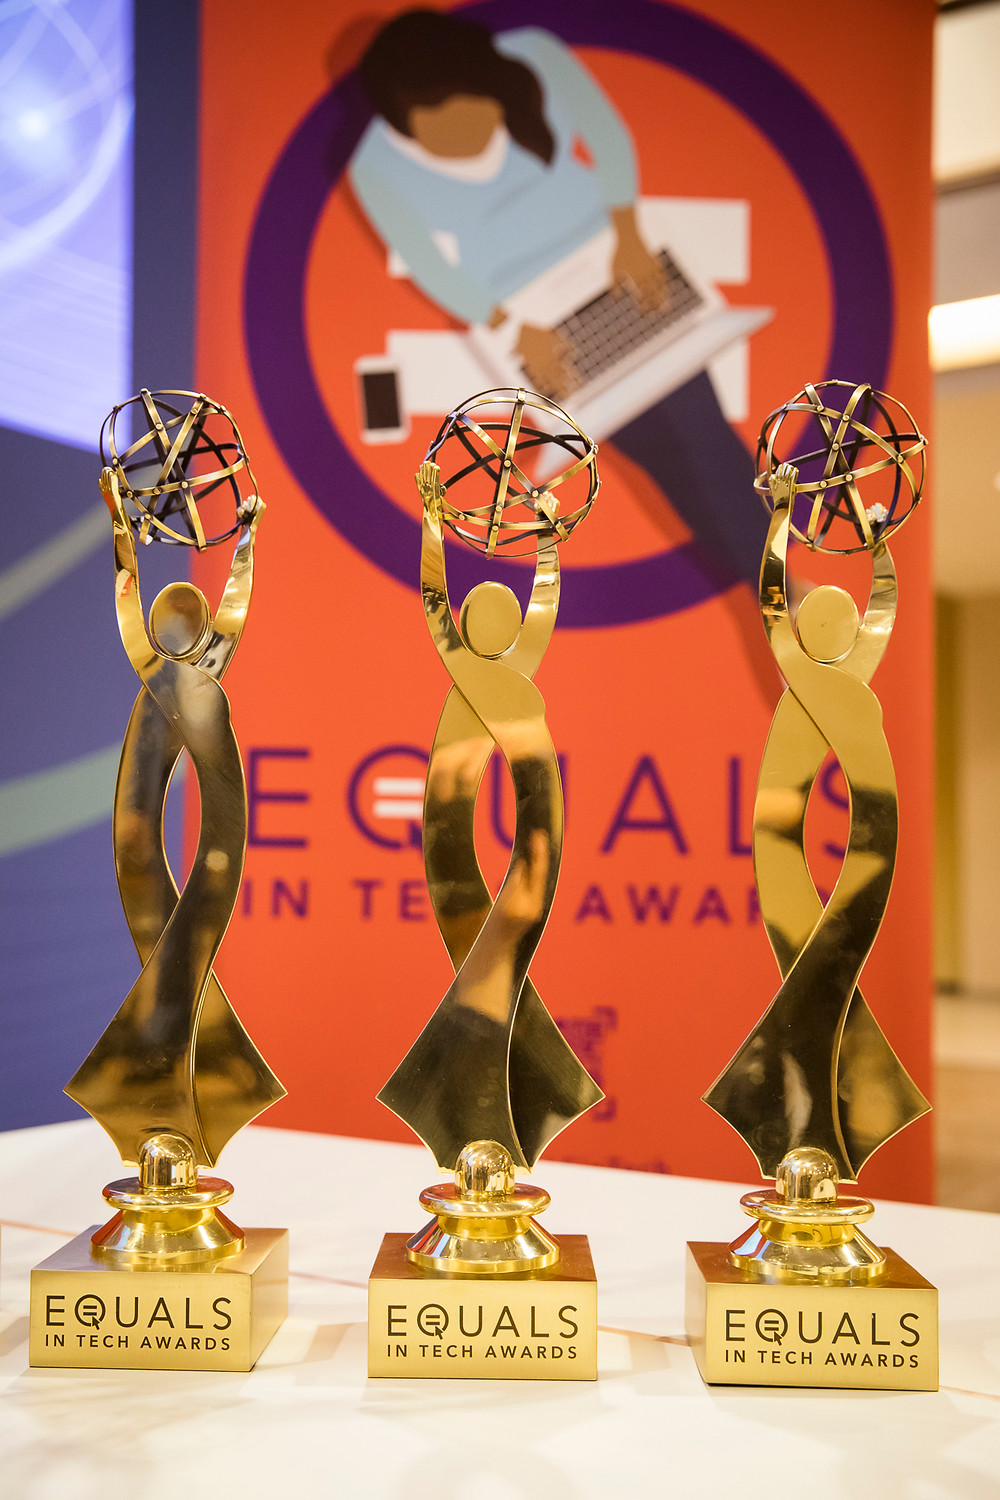 Row of three EQUALS in Tech Award trophies